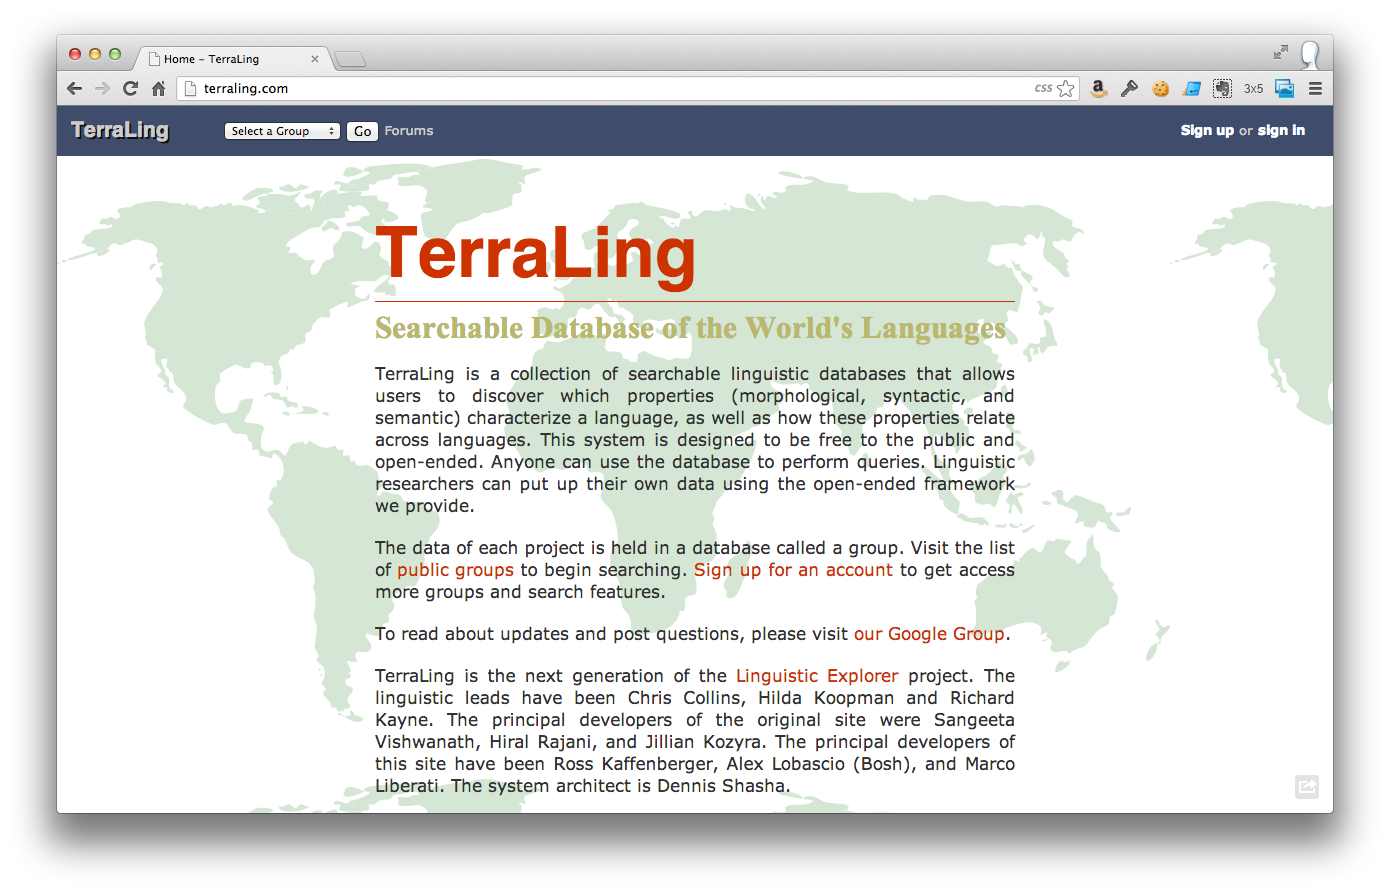 Terraling: searchable database of the world's languages